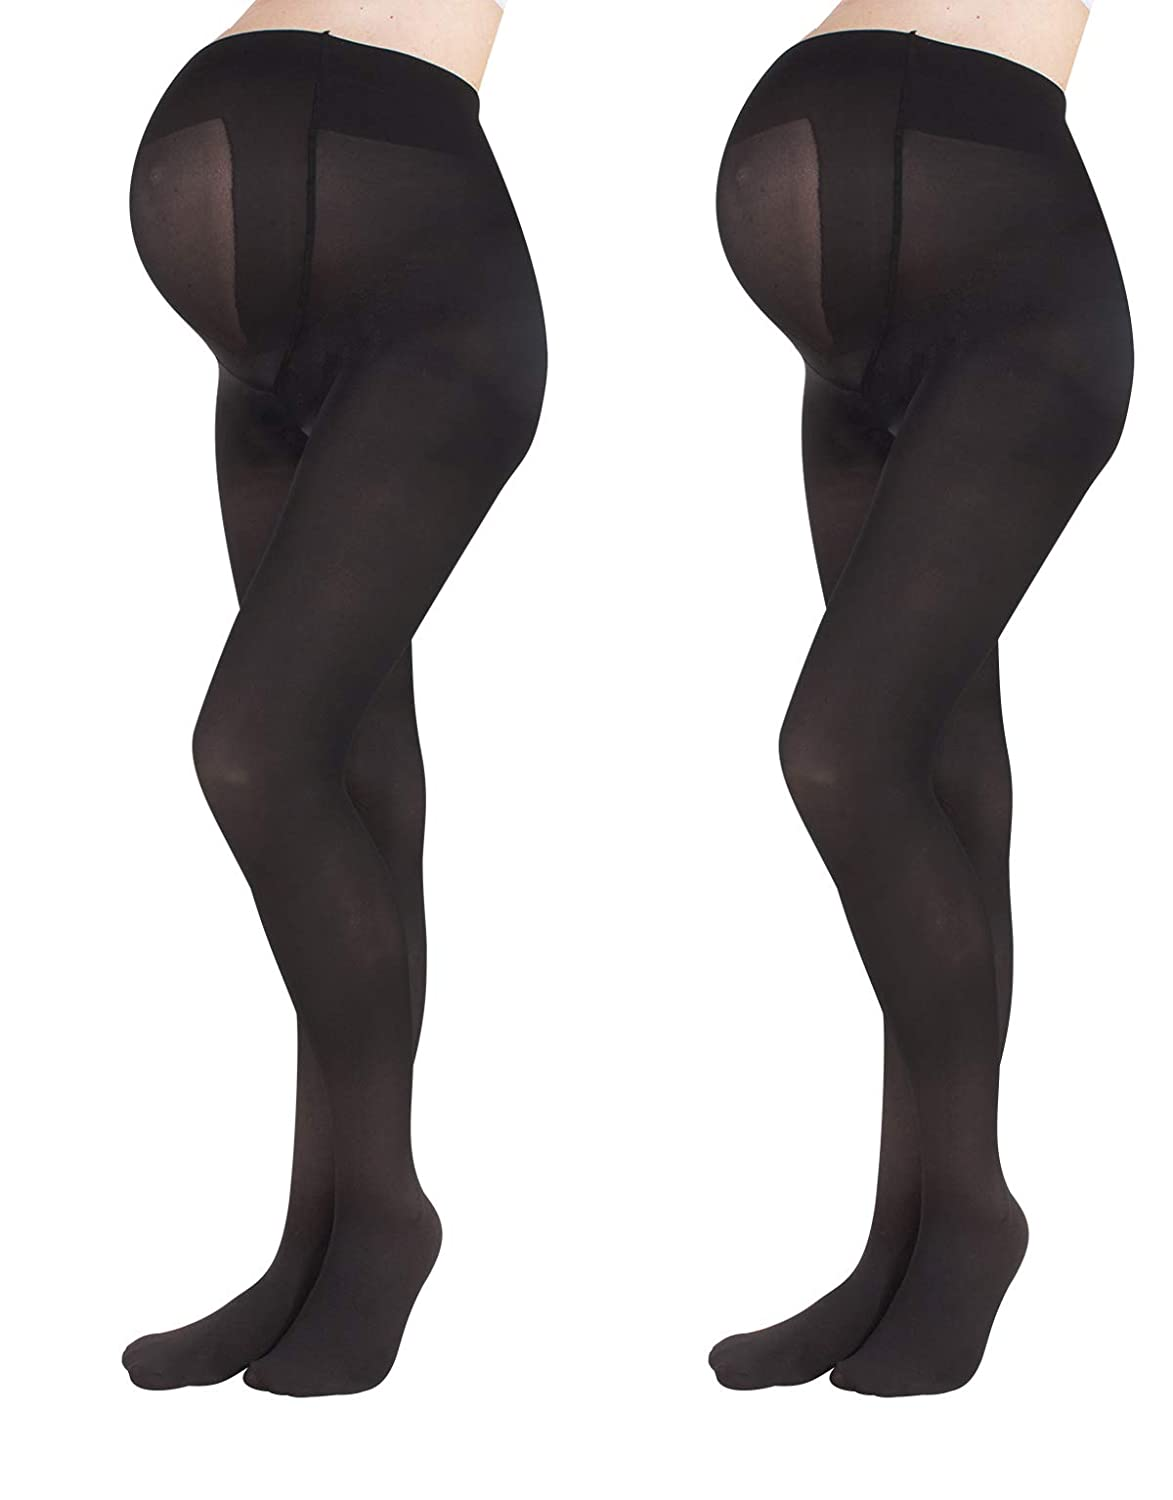 00ff932dc762e 2 PAIRS MATERNITY TIGHTS | PREGNANCY OPAQUE PANTYHOSE | 40 DEN | S M L XL |  BLACK